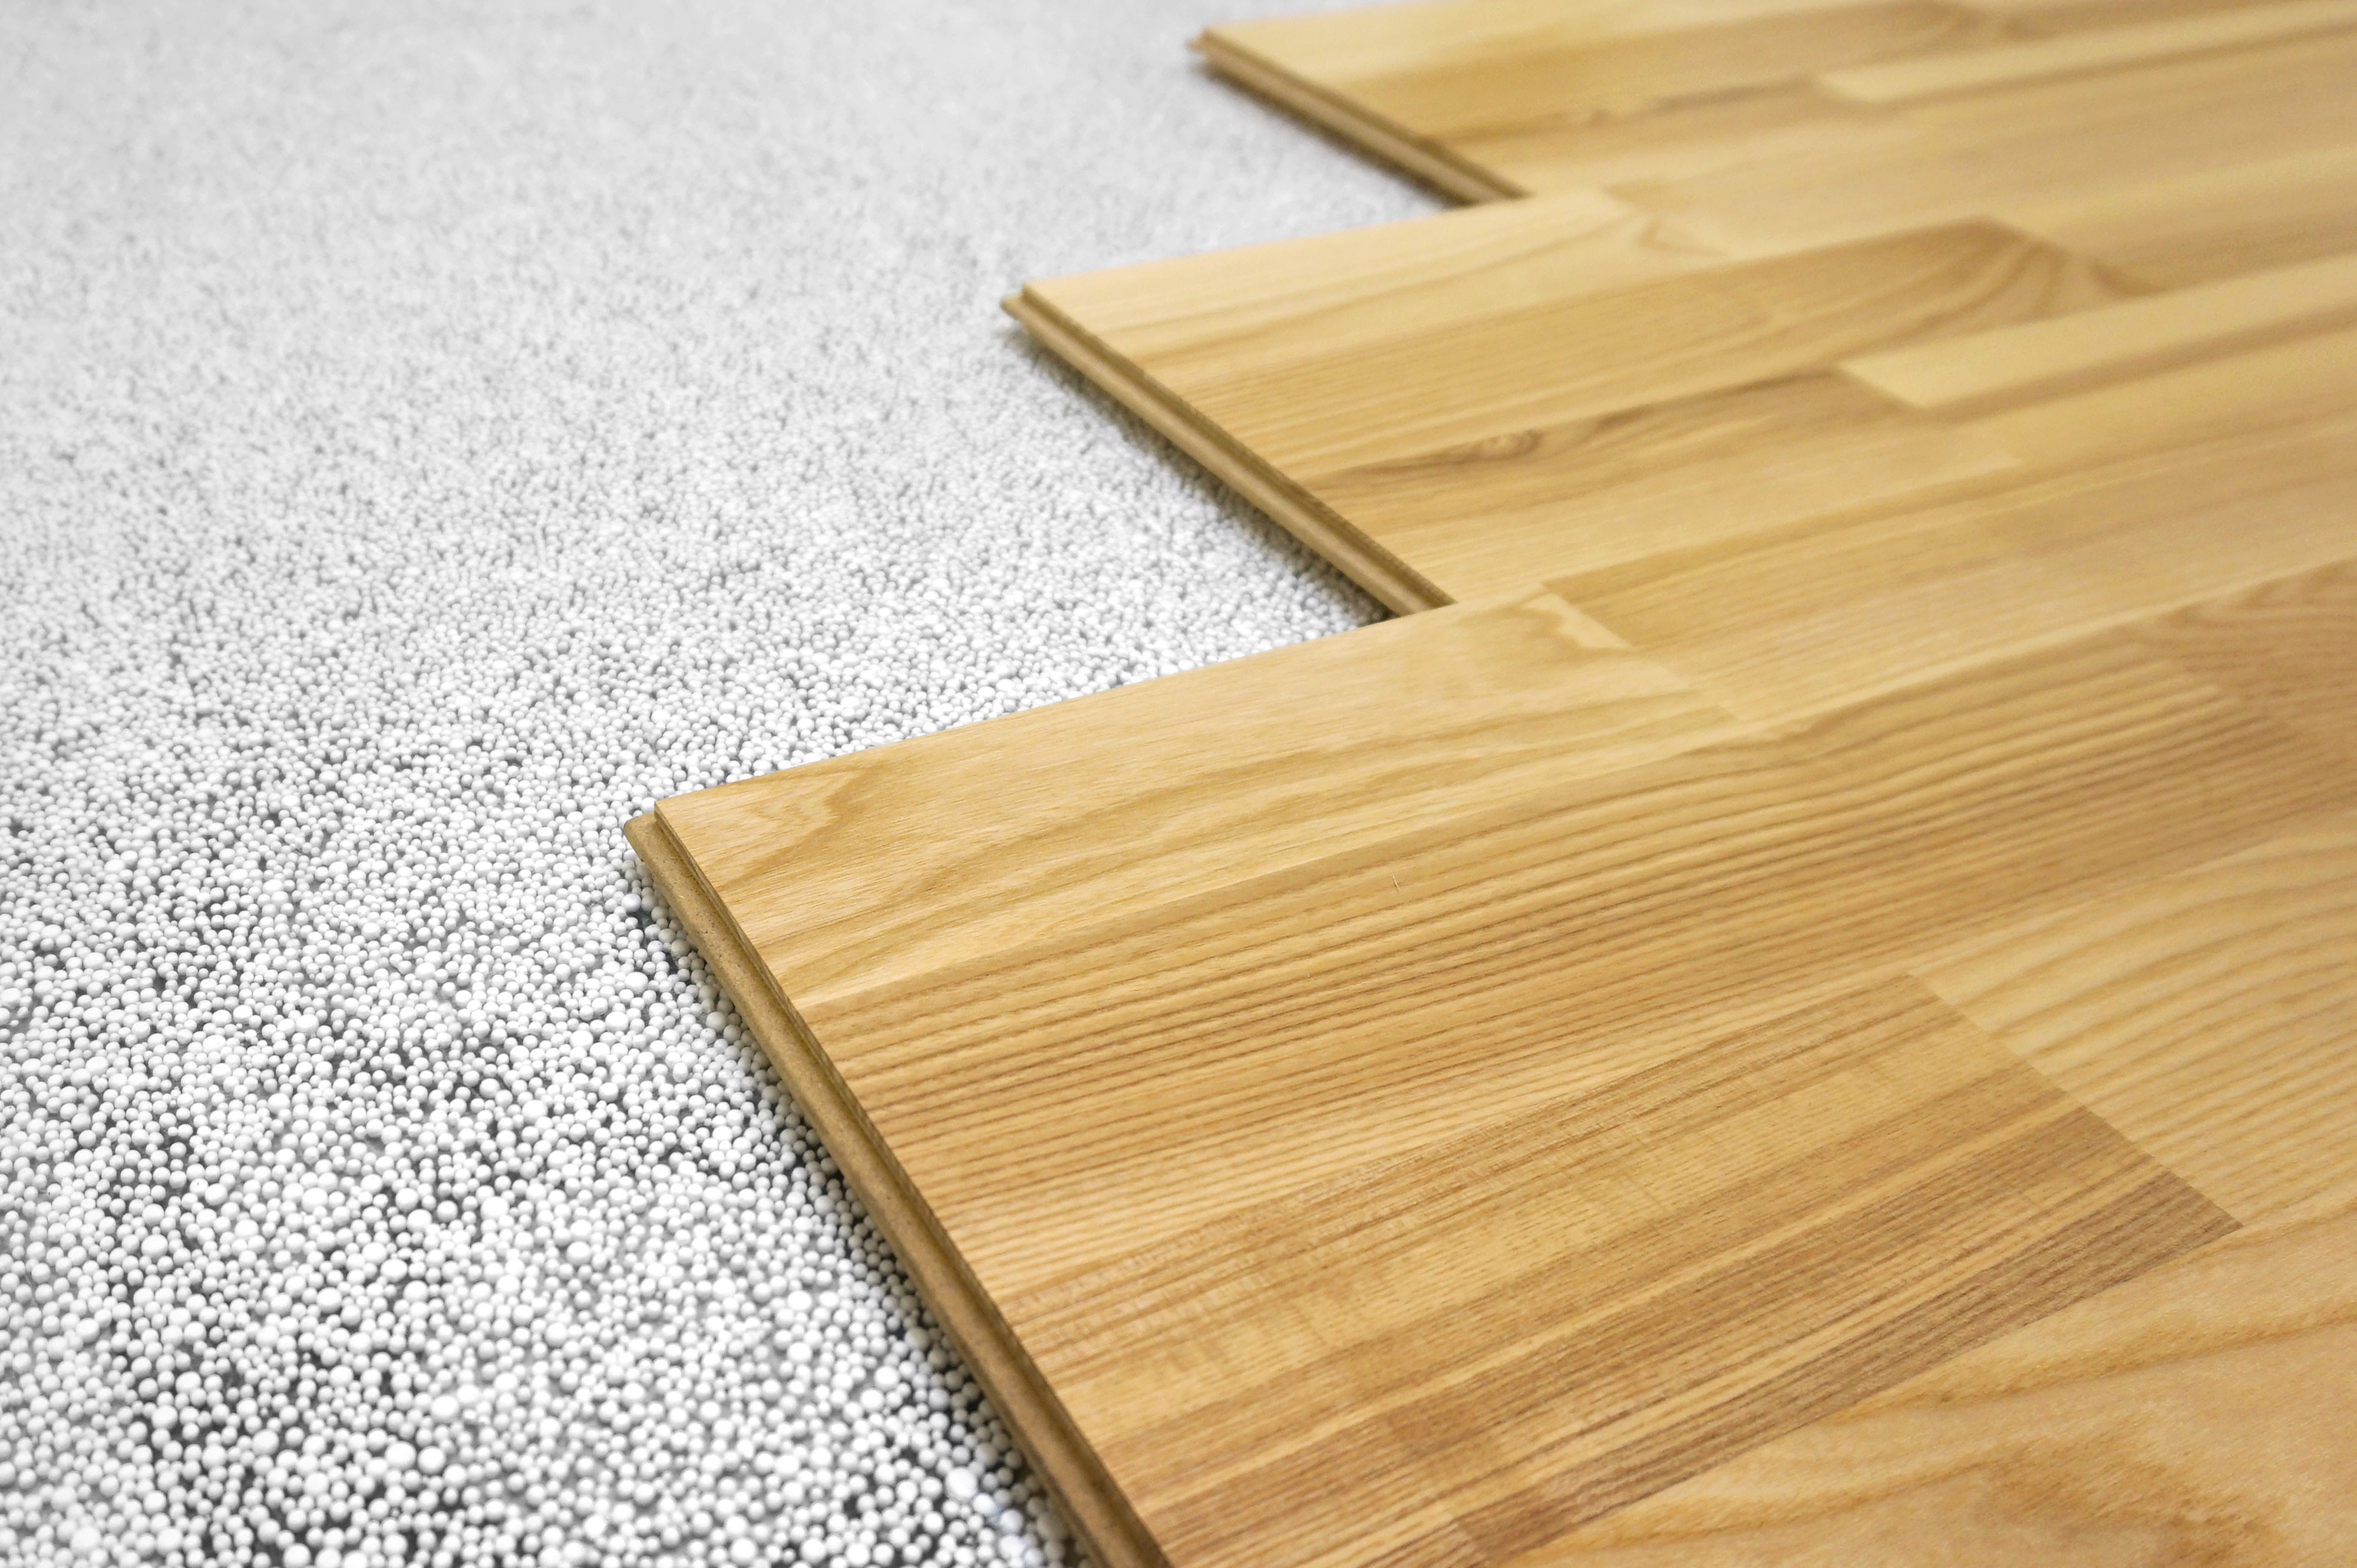 hardwood flooring for sale by owner of what does it cost to install laminate flooring angies list for wood lam